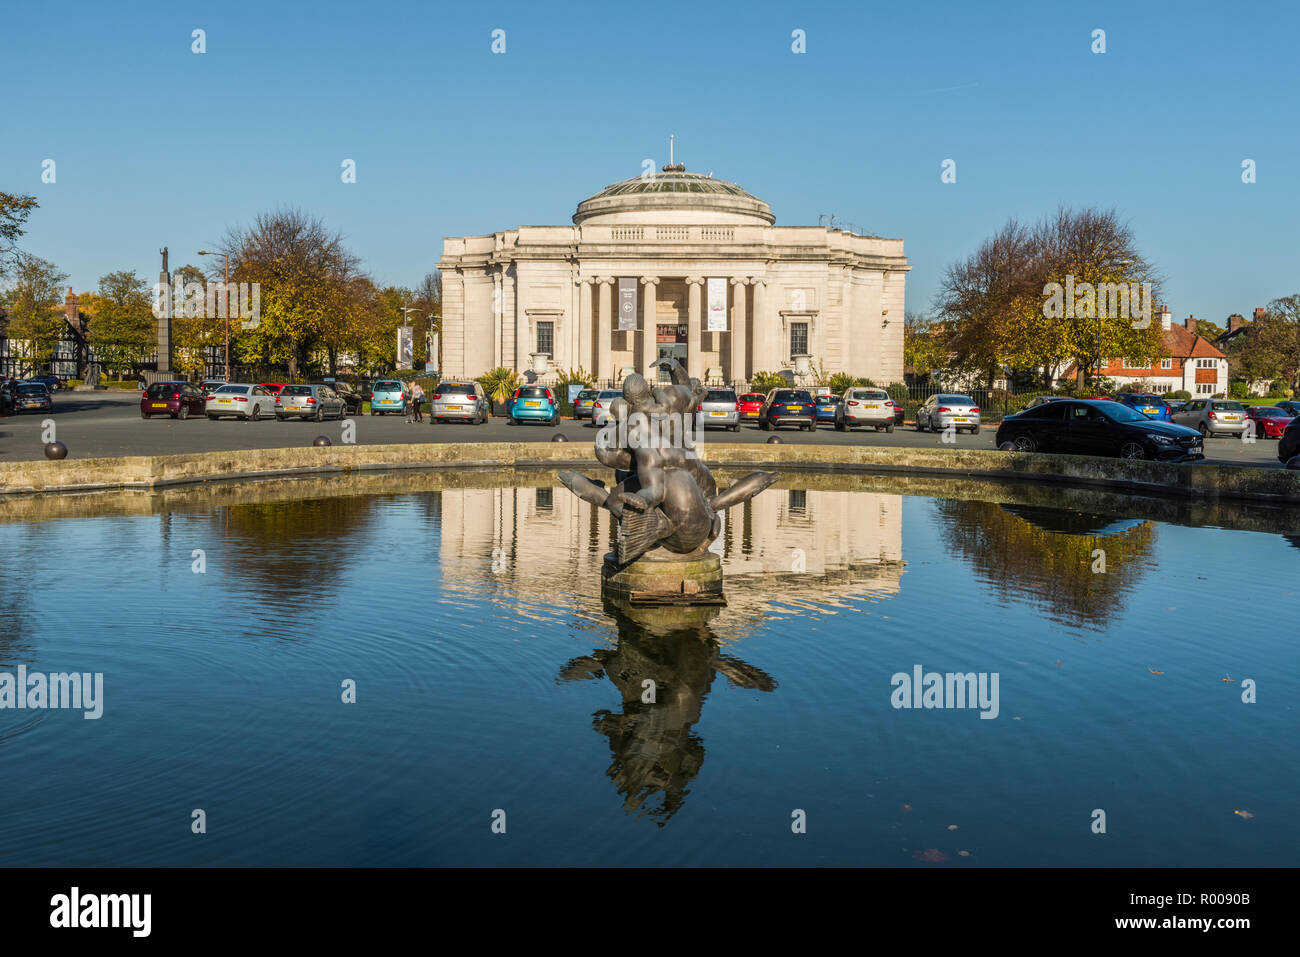 Lady Lever Art Gallery, Port Sunlight, Wirral, Merseyside - Stock Image